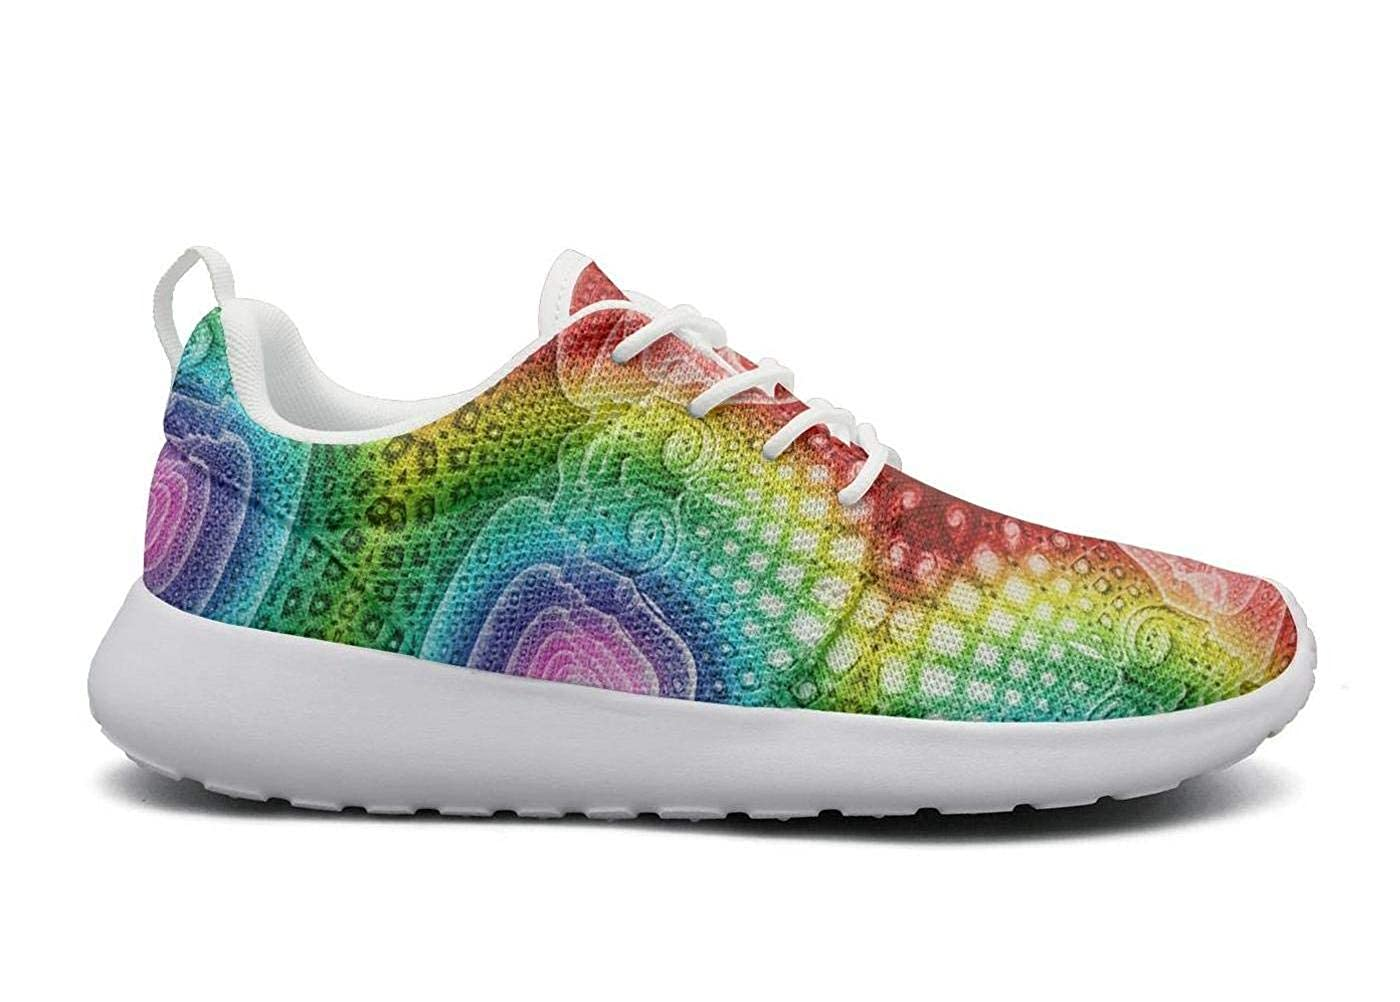 Trippy abstract psychedelic music Festival Plimsolls Women for Women Low Top Comfortable and Lightweight Running Shoes